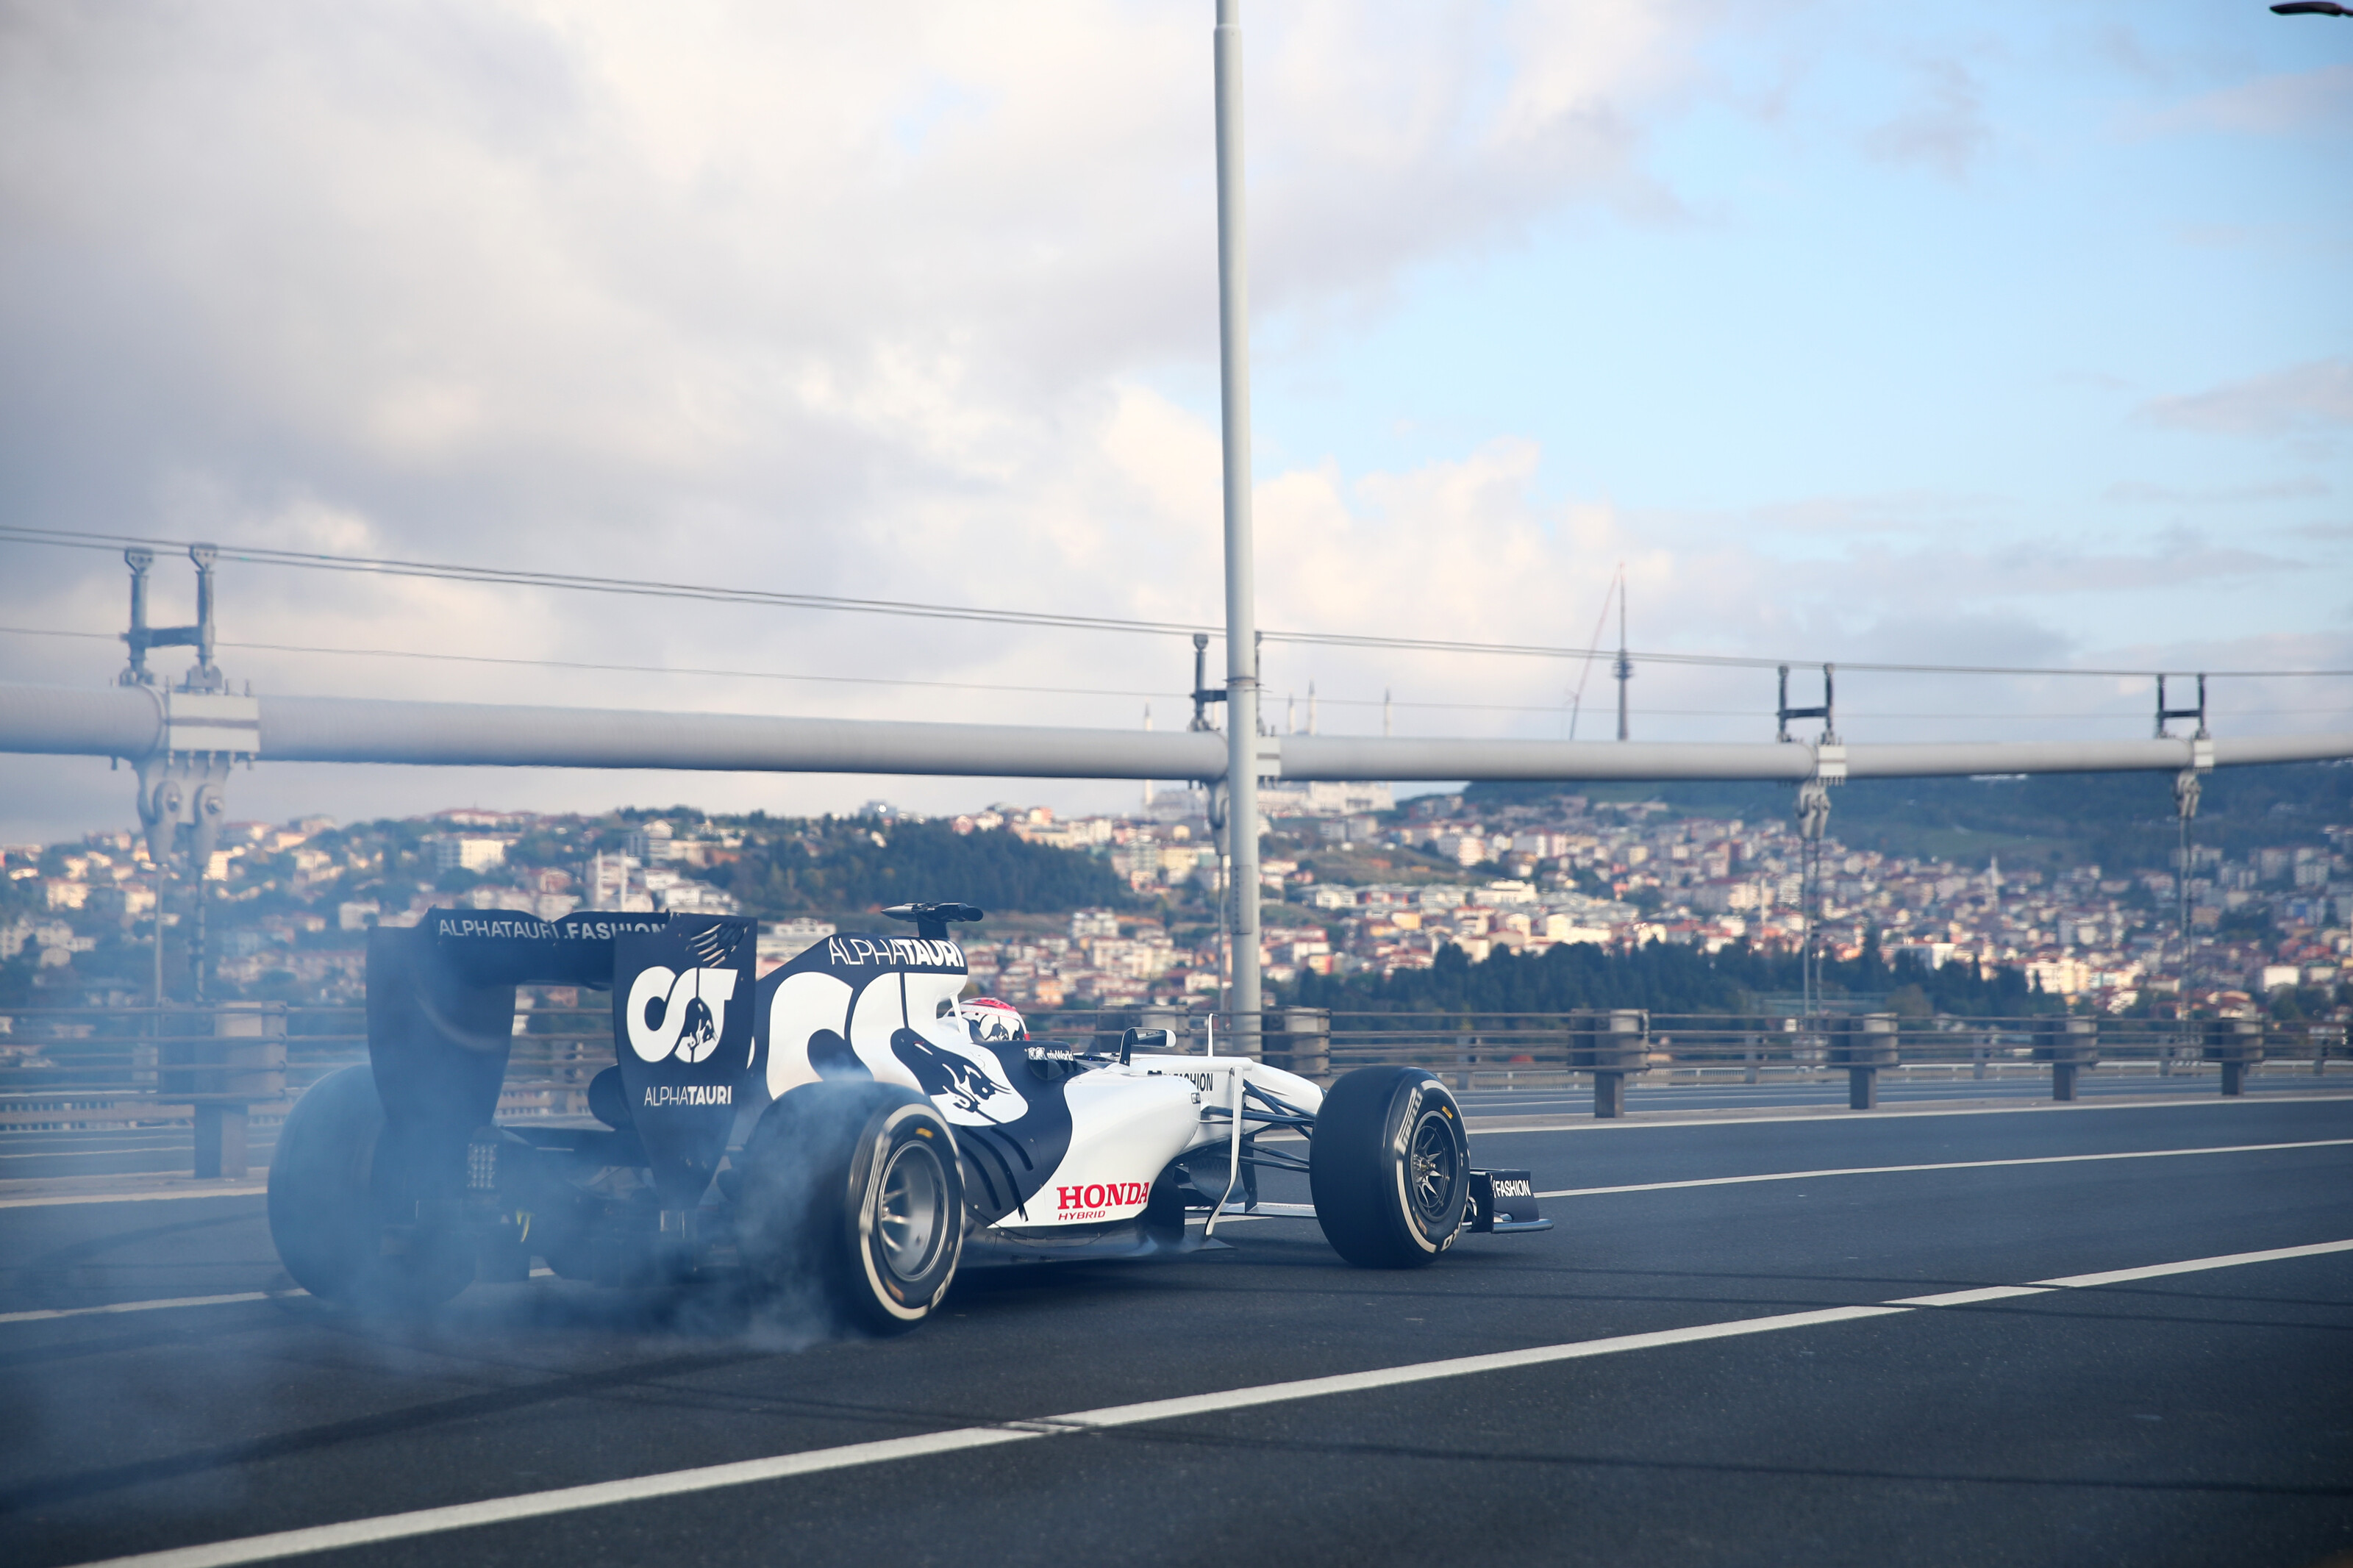 ISTANBUL, TURKEY - NOVEMBER 11: Pierre Gasly of France and Scuderia AlphaTauri performs donuts on 15 July Martyrs Bridge over the Bosphorus during the Red Bull Istanbulls show run on November 11, 2020 in Istanbul, Turkey. (Photo by Joe Portlock/Getty Images) // Getty Images / Red Bull Content Pool  // SI202011110343 // Usage for editorial use only //